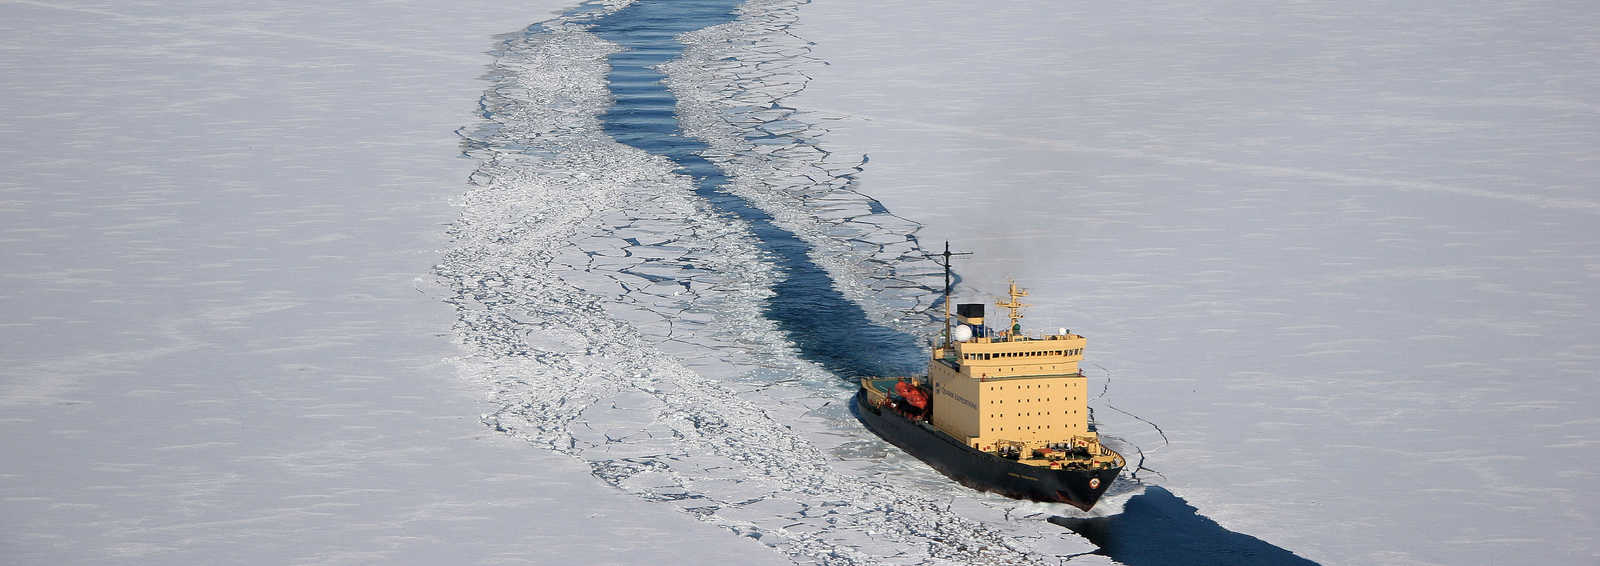 Ploughing through the ice on the icebreaker 50years of Victory